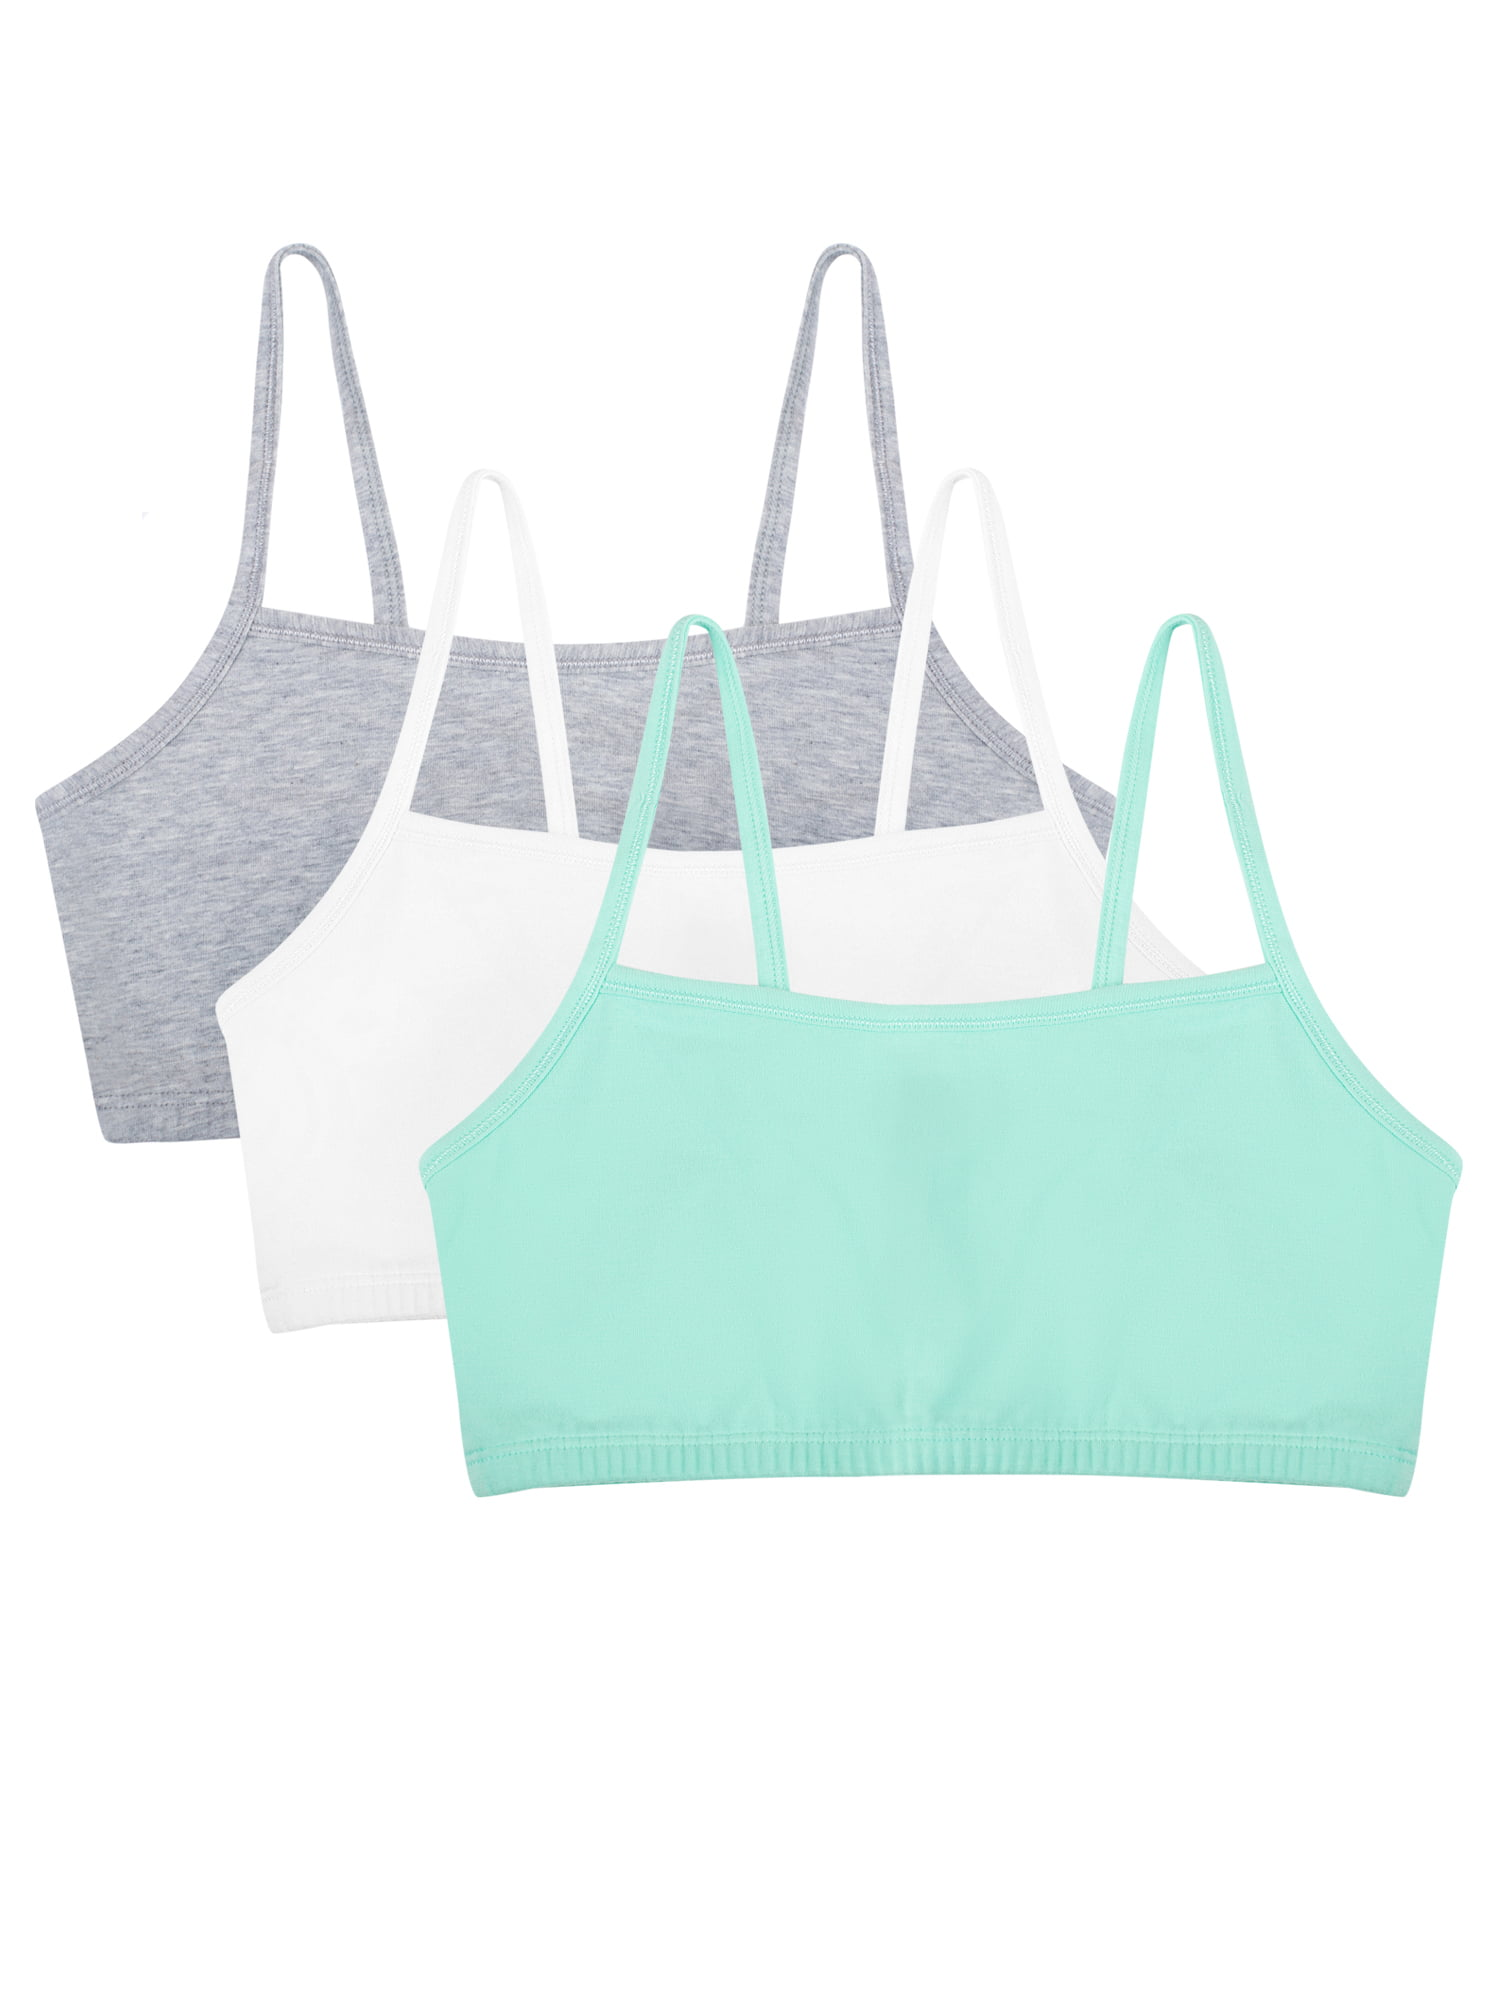 Bundle Bras Grade Products According To Quality Clothes, Shoes & Accessories